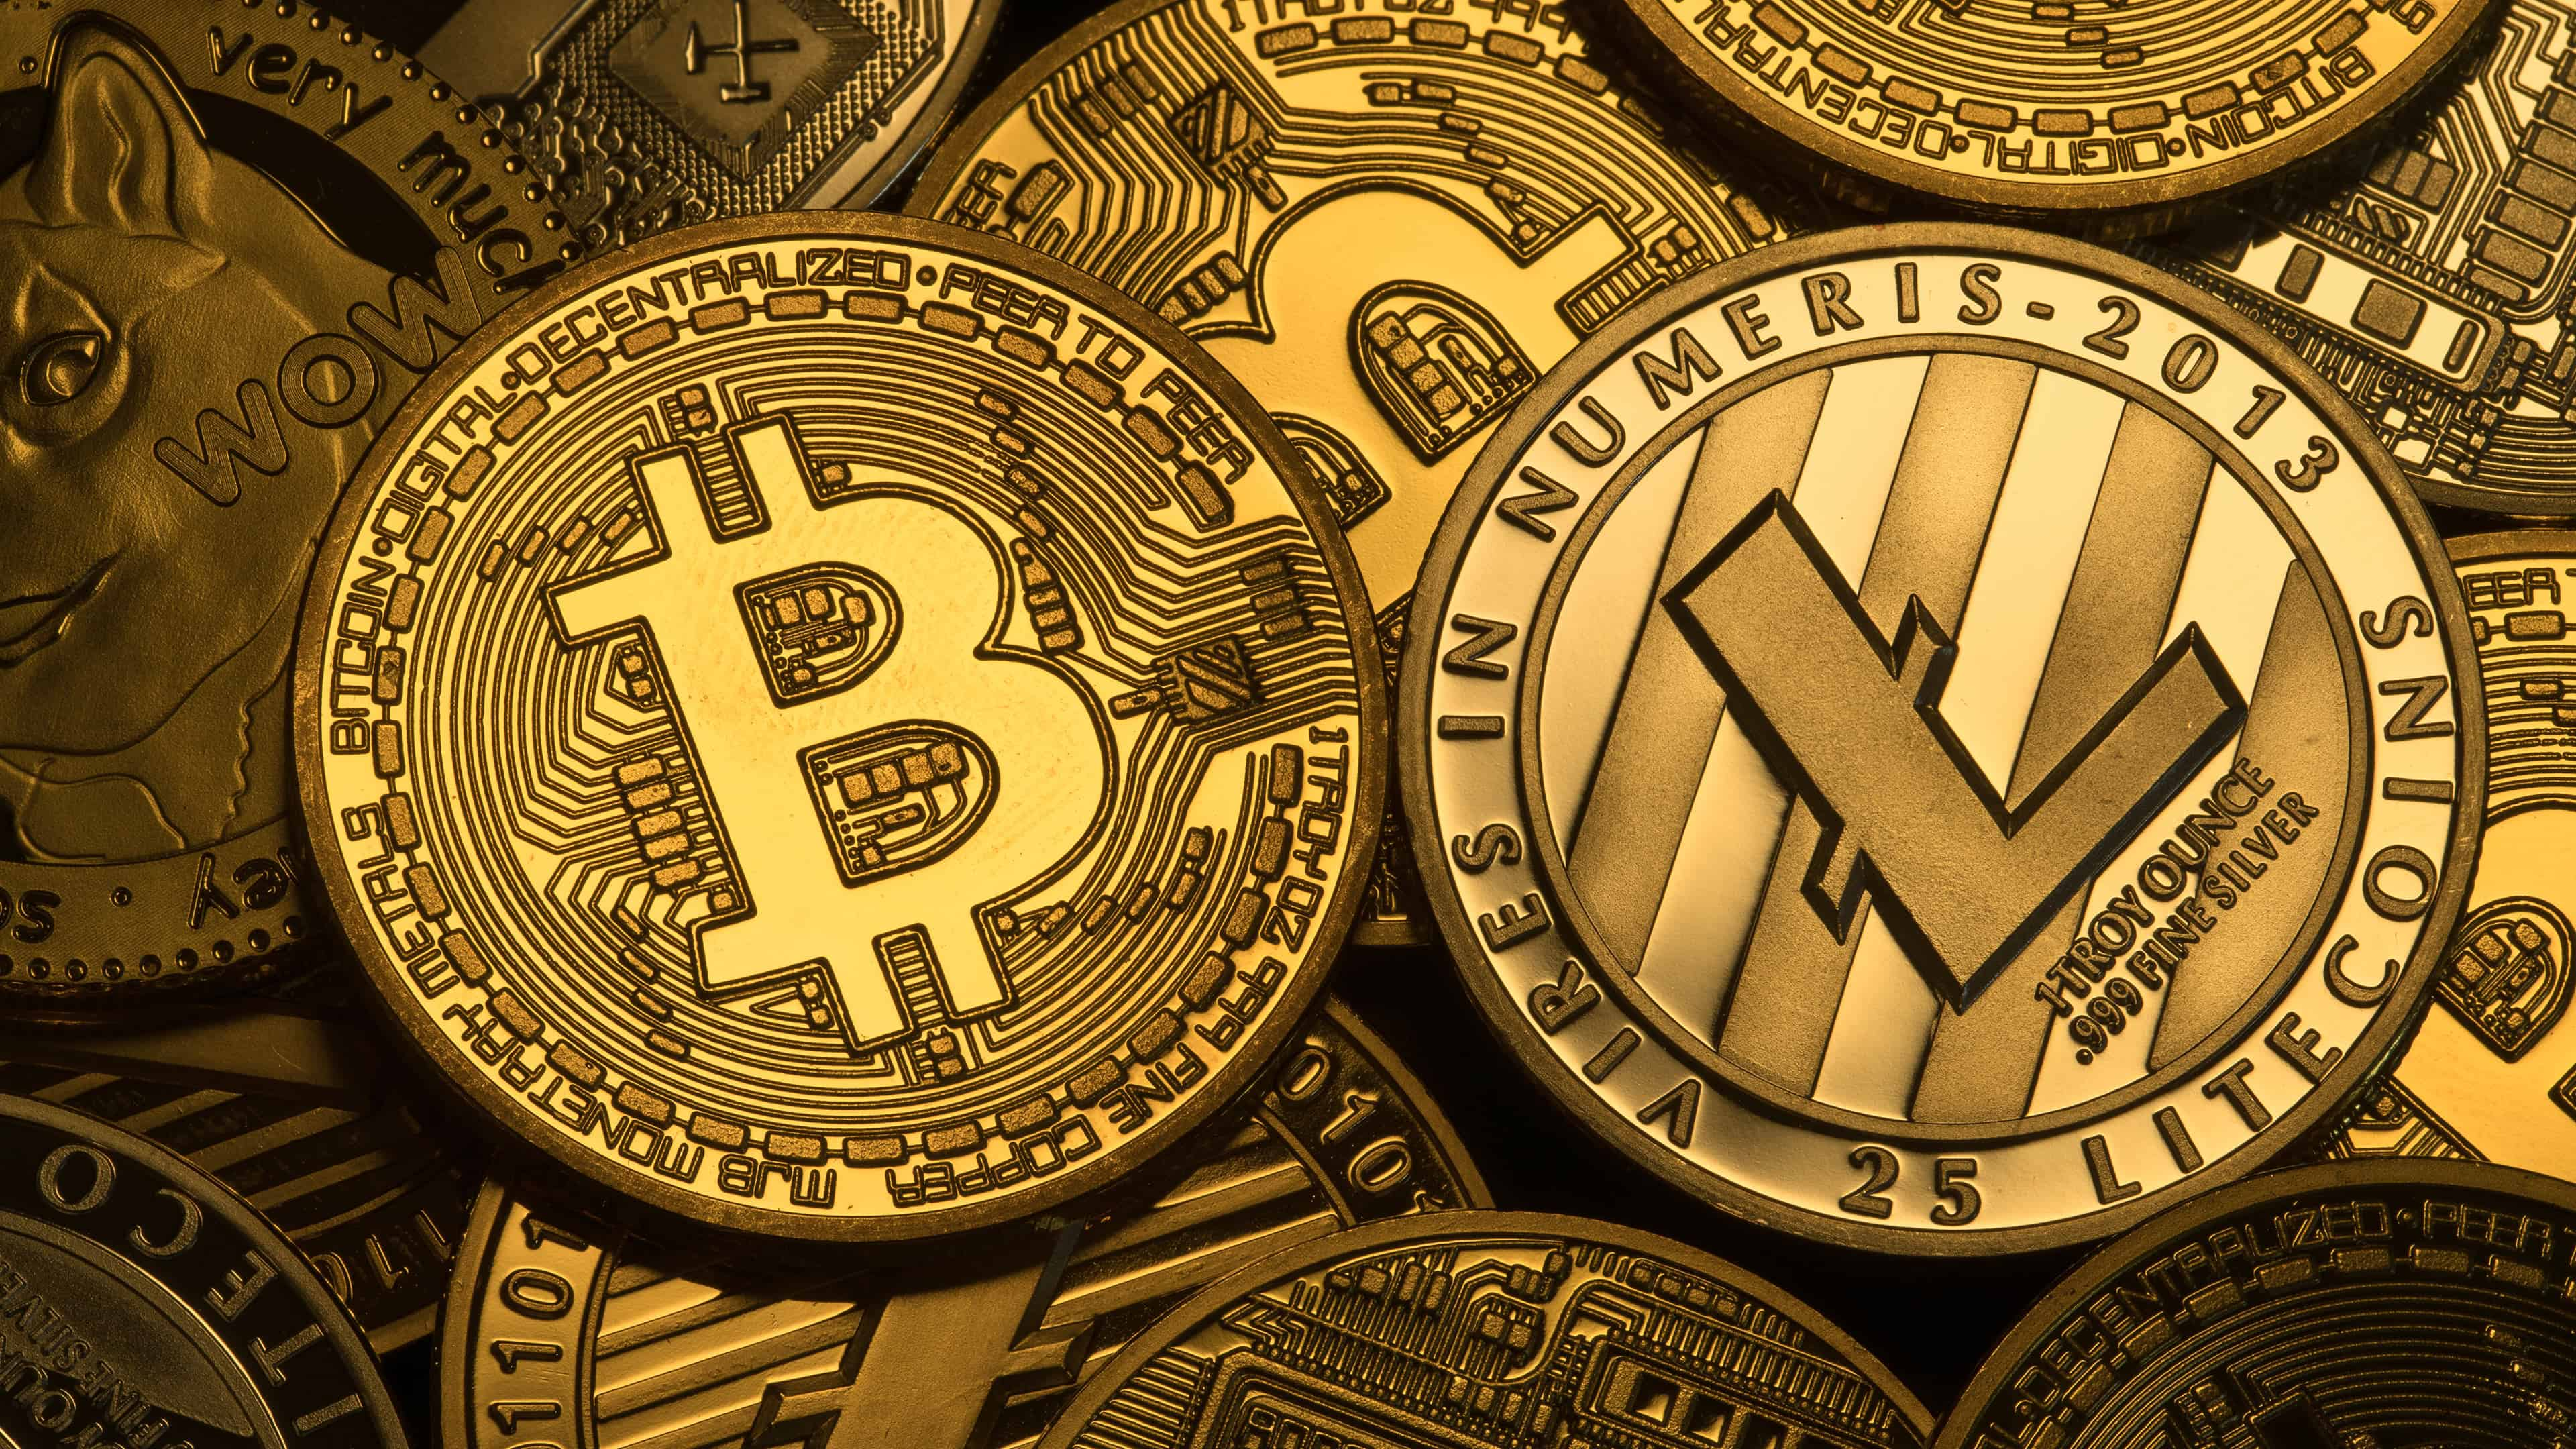 Cryptocurrency Coins UHD 4K Wallpaper - Pixelz.cc